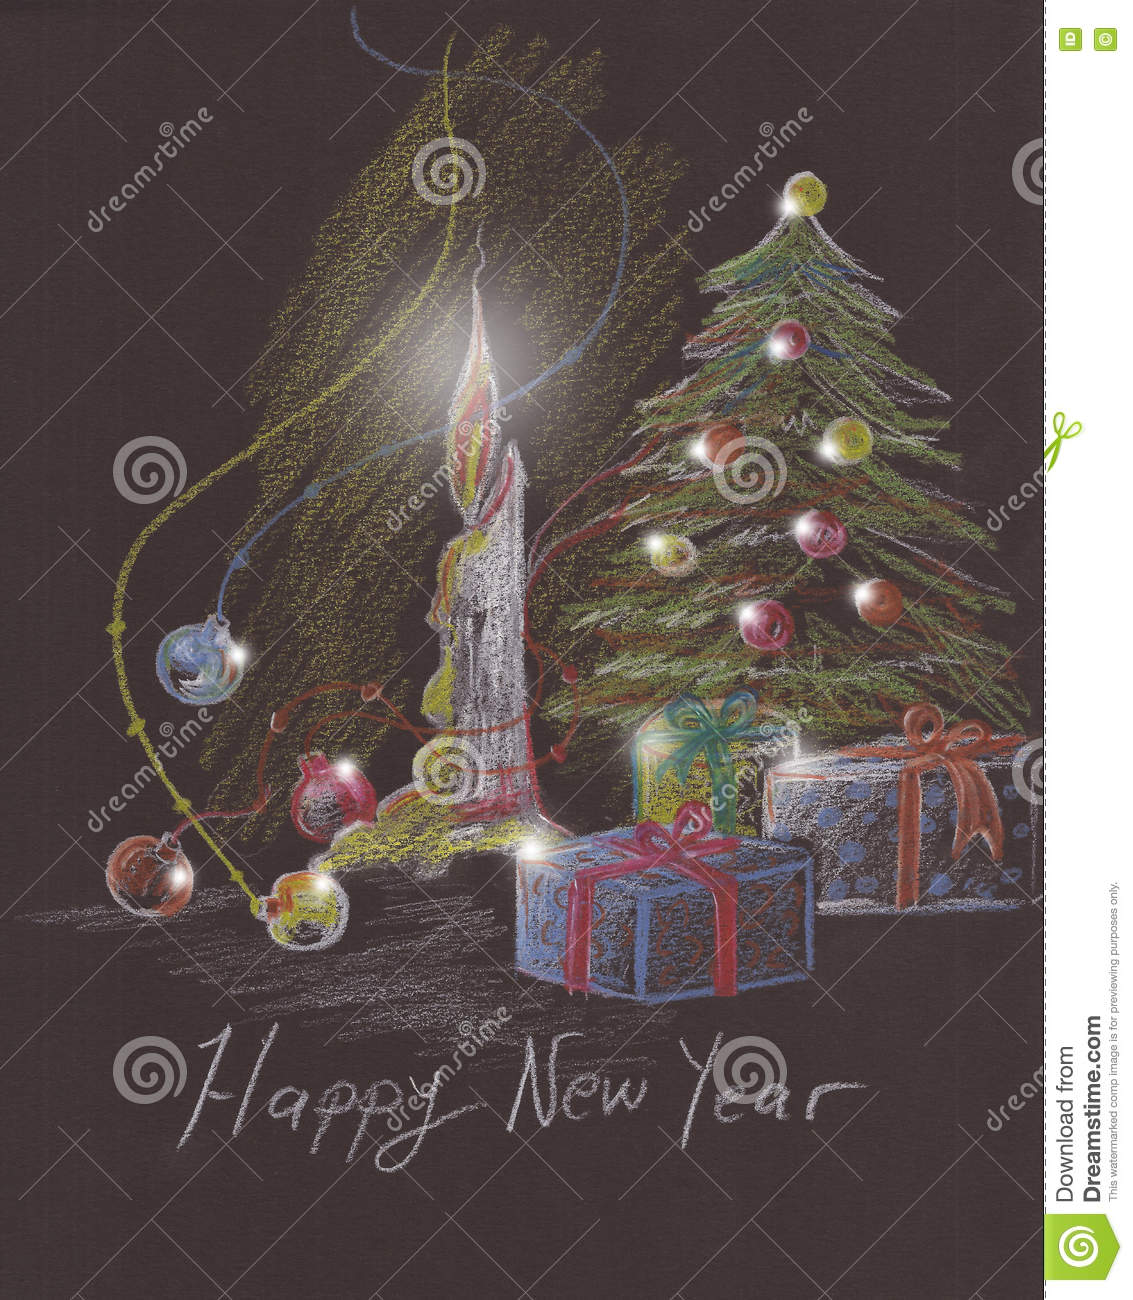 Pencil drawing happy new year card design with lights on pine tree globes boxes and fire of candle sketch on black